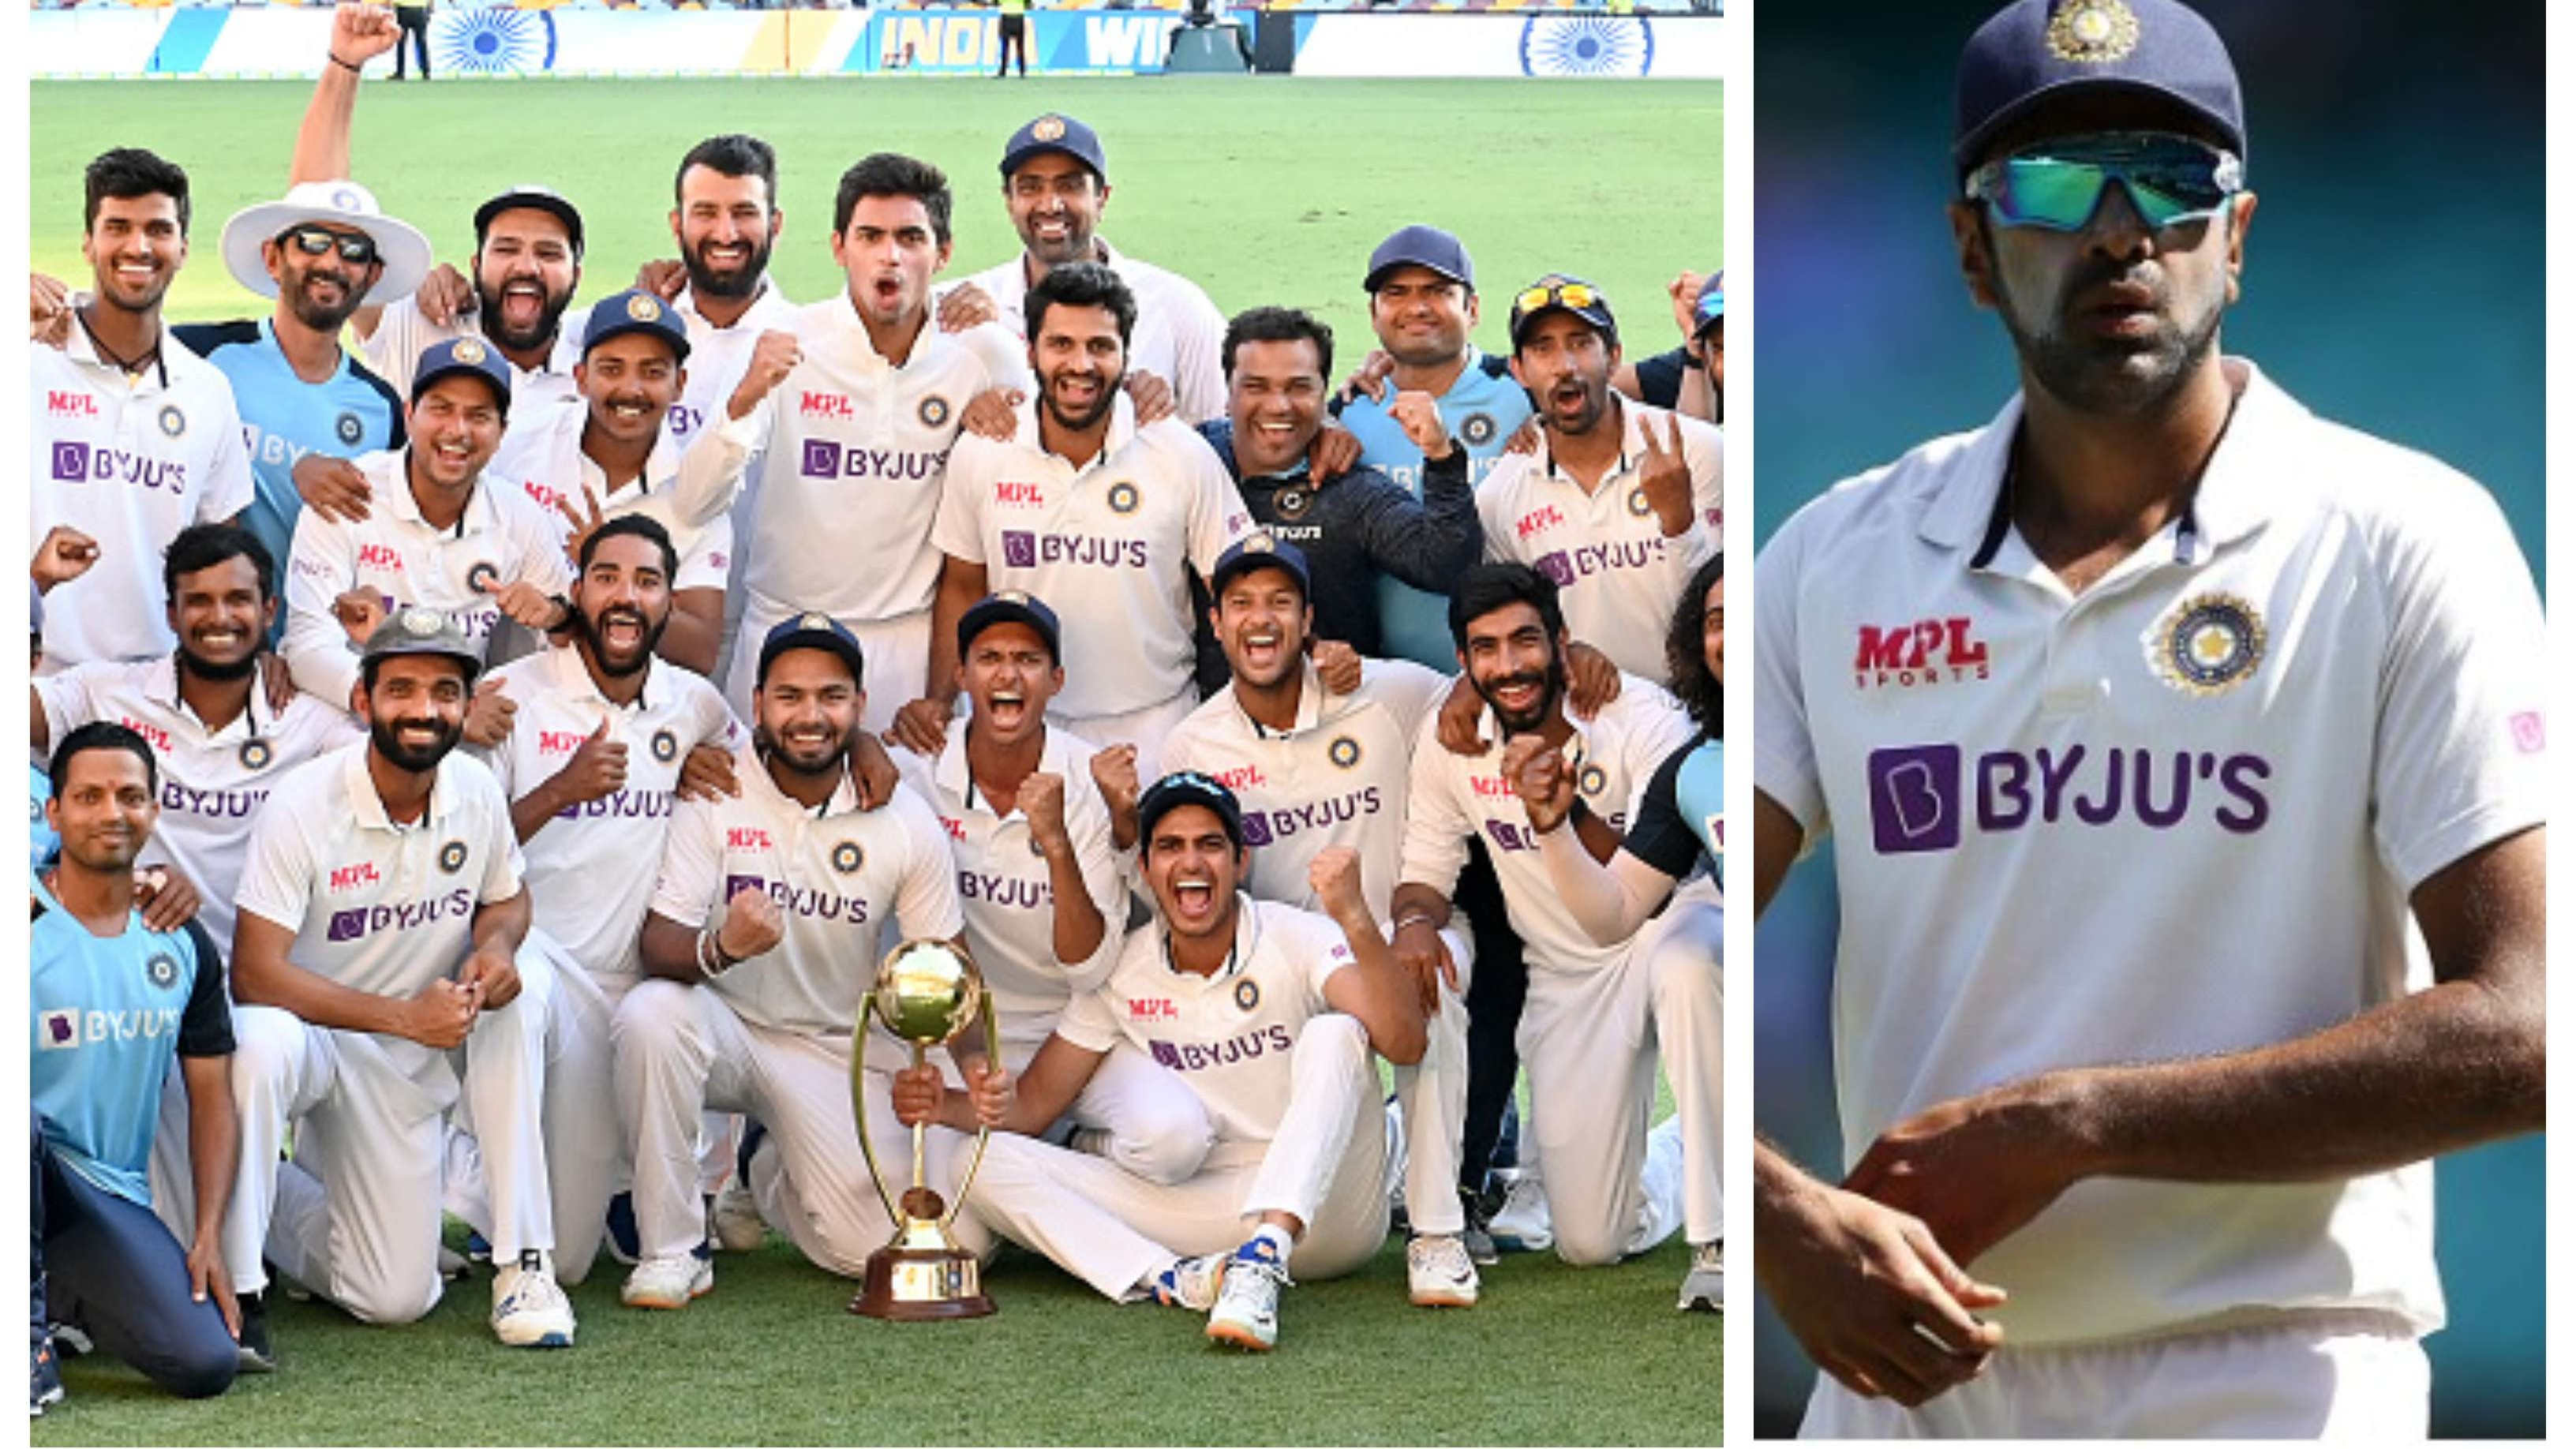 AUS v IND 2020-21: 'Thought it was a fortress', R Ashwin takes a dig at Gabba hype after India's series win